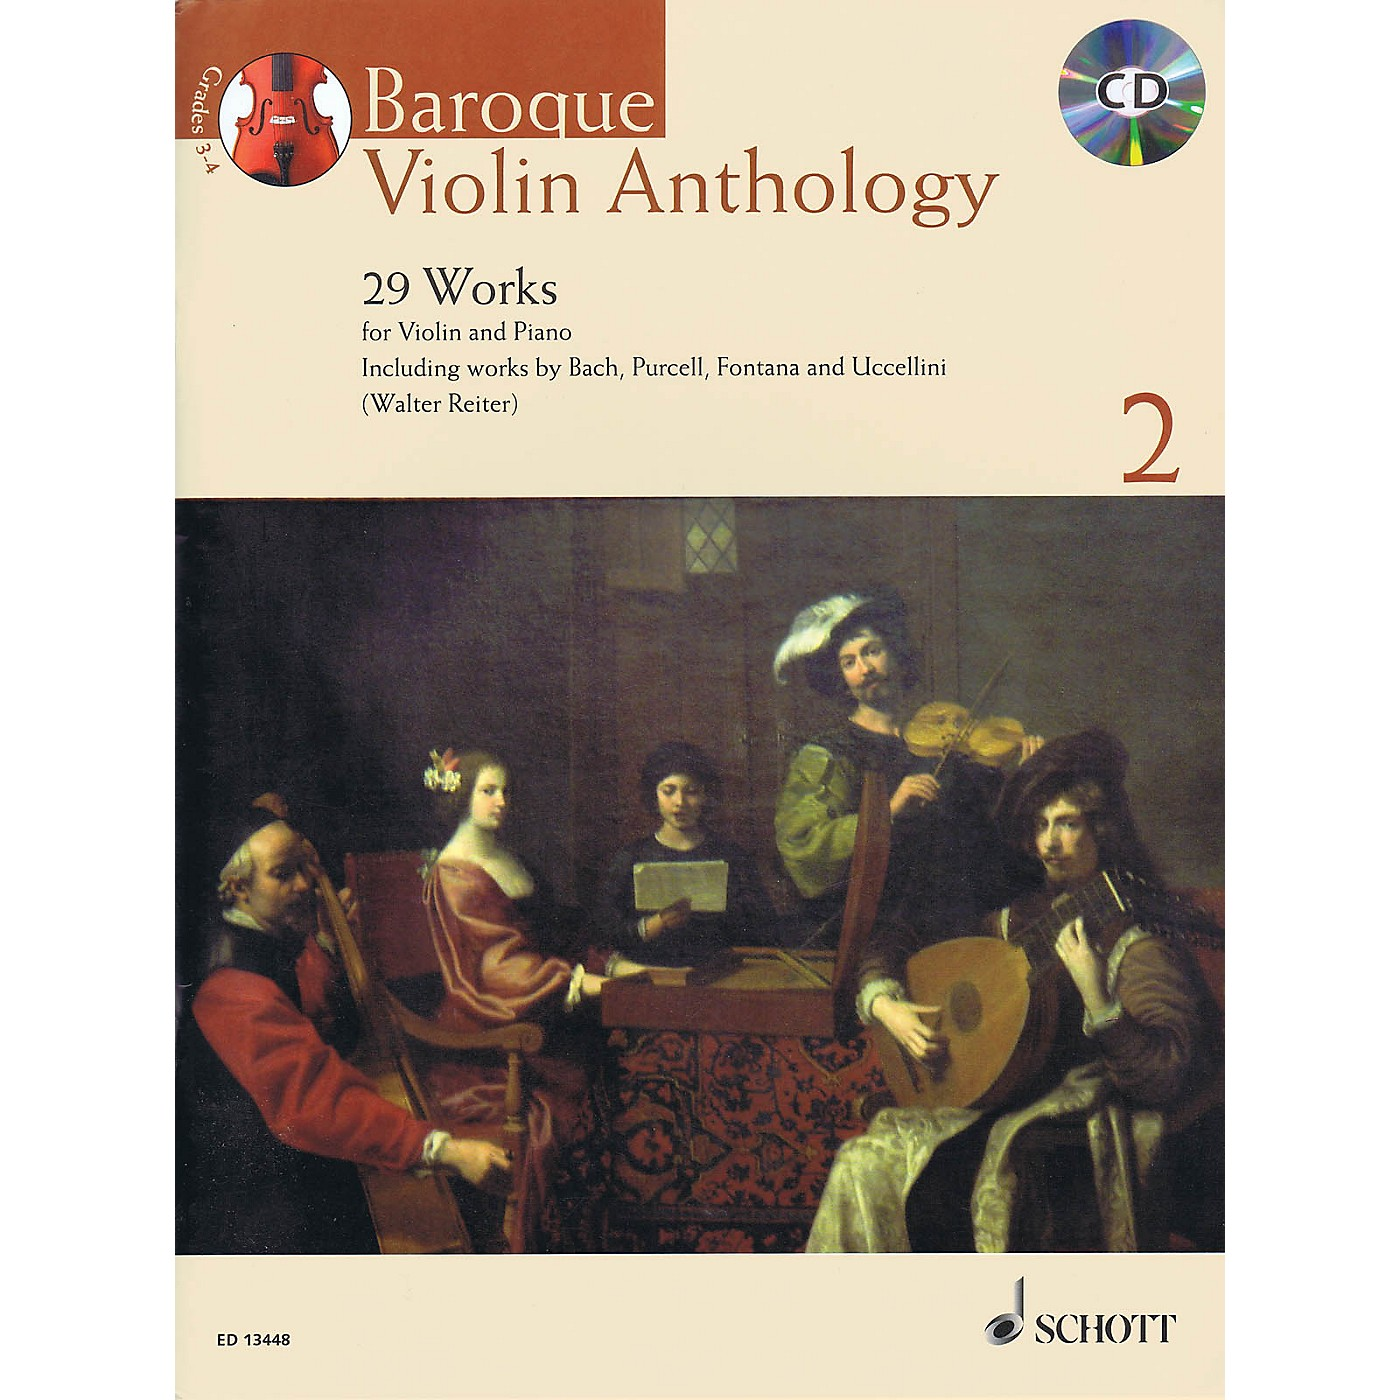 Schott Baroque Violin Anthology - Volume 2 (29 Works for Violin and Piano) String Series Softcover with CD thumbnail